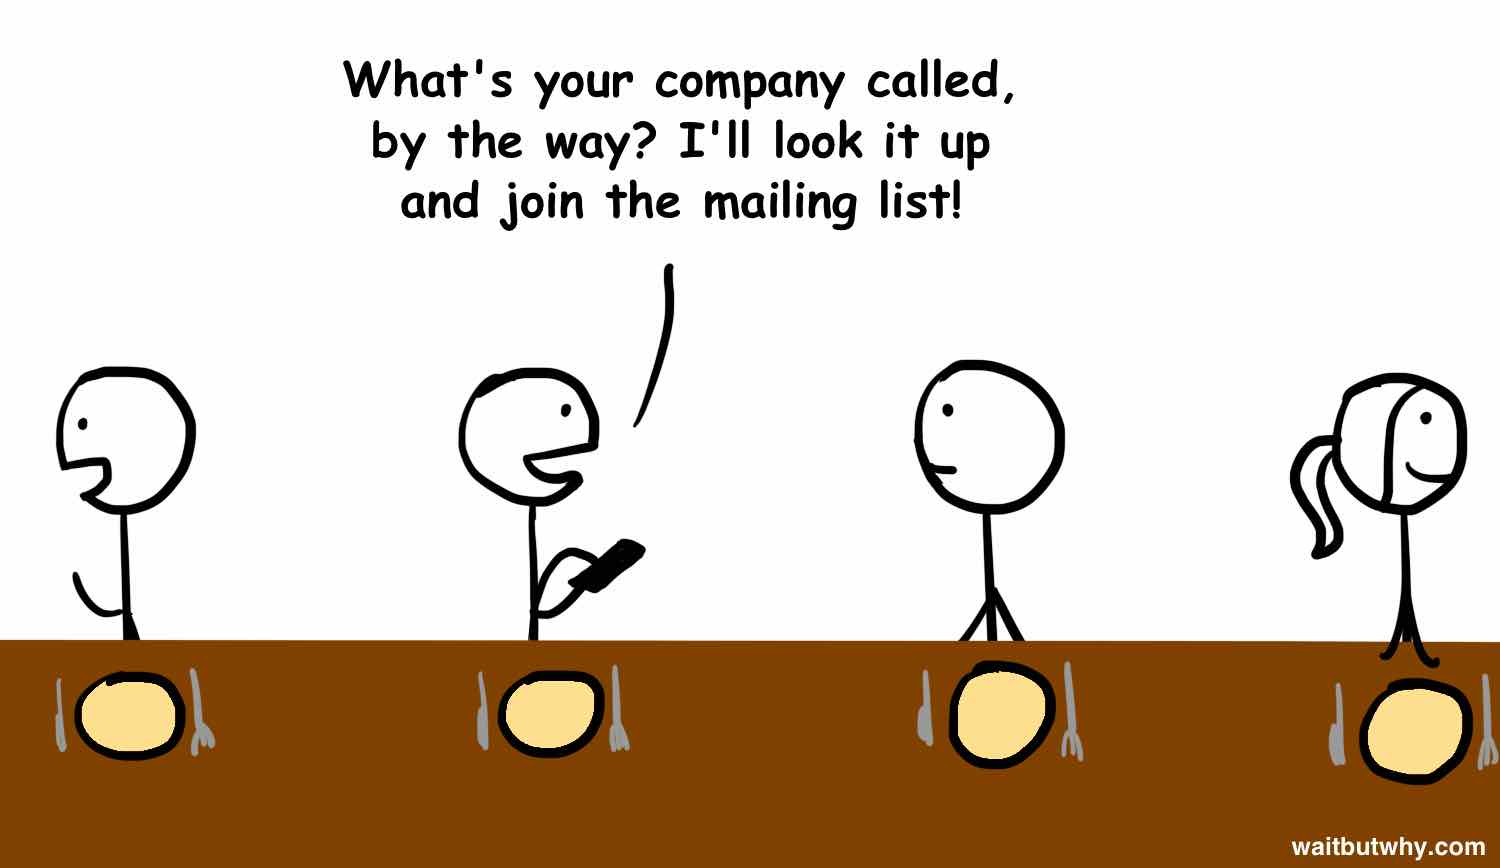 Tim: What's your company called, by the way? I'll look it up and join the mailing list!